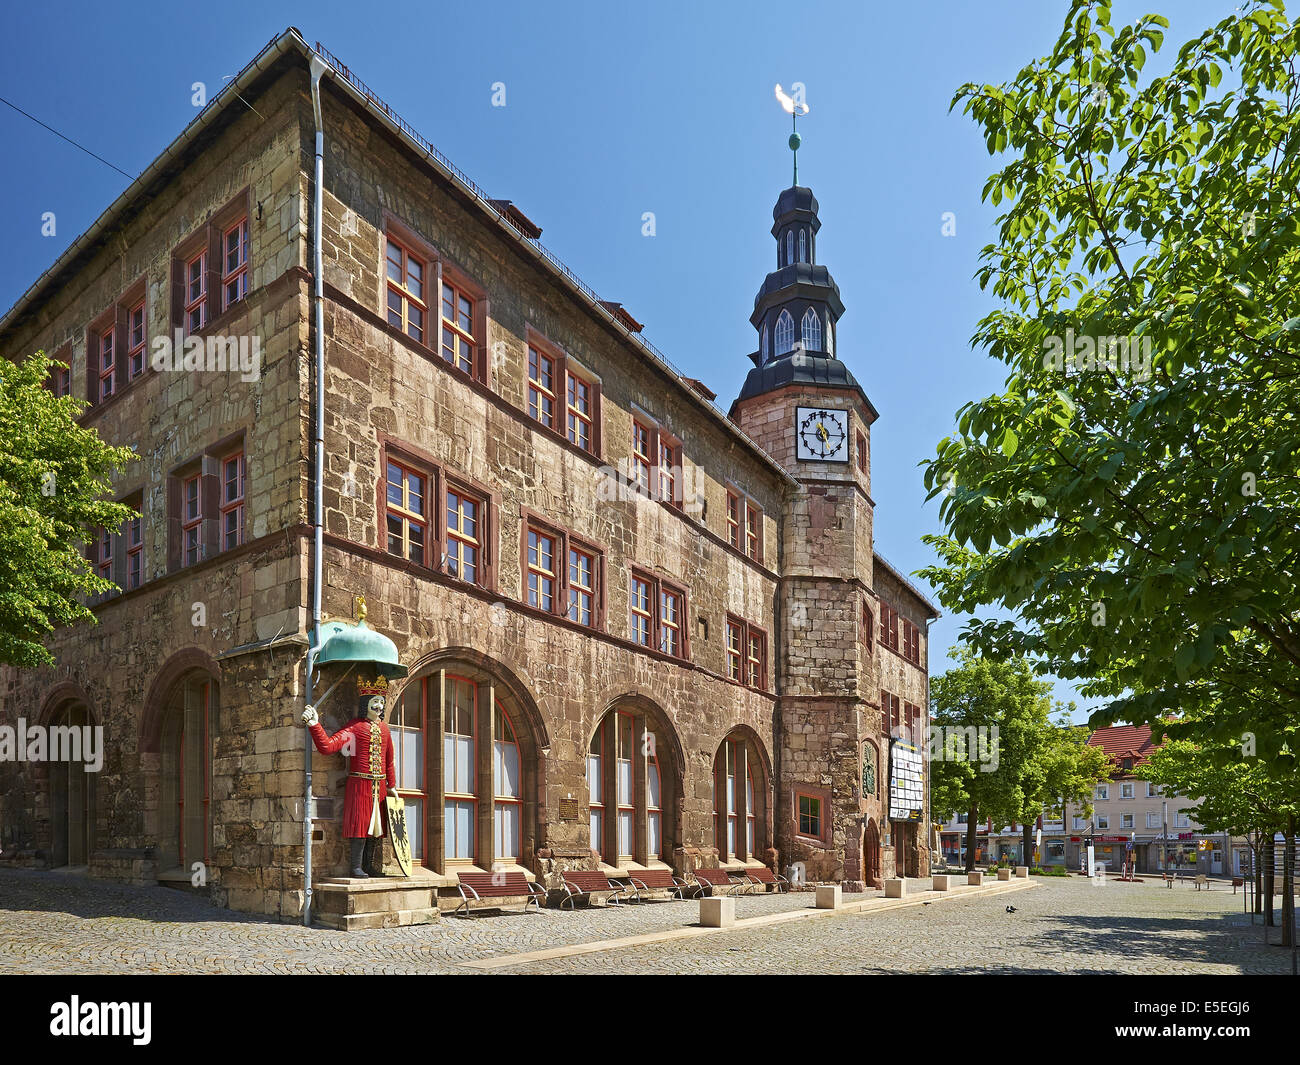 Nordhausen Germany  city photos gallery : Town Hall With Roland Figure In Nordhausen, Germany Stock Photo ...